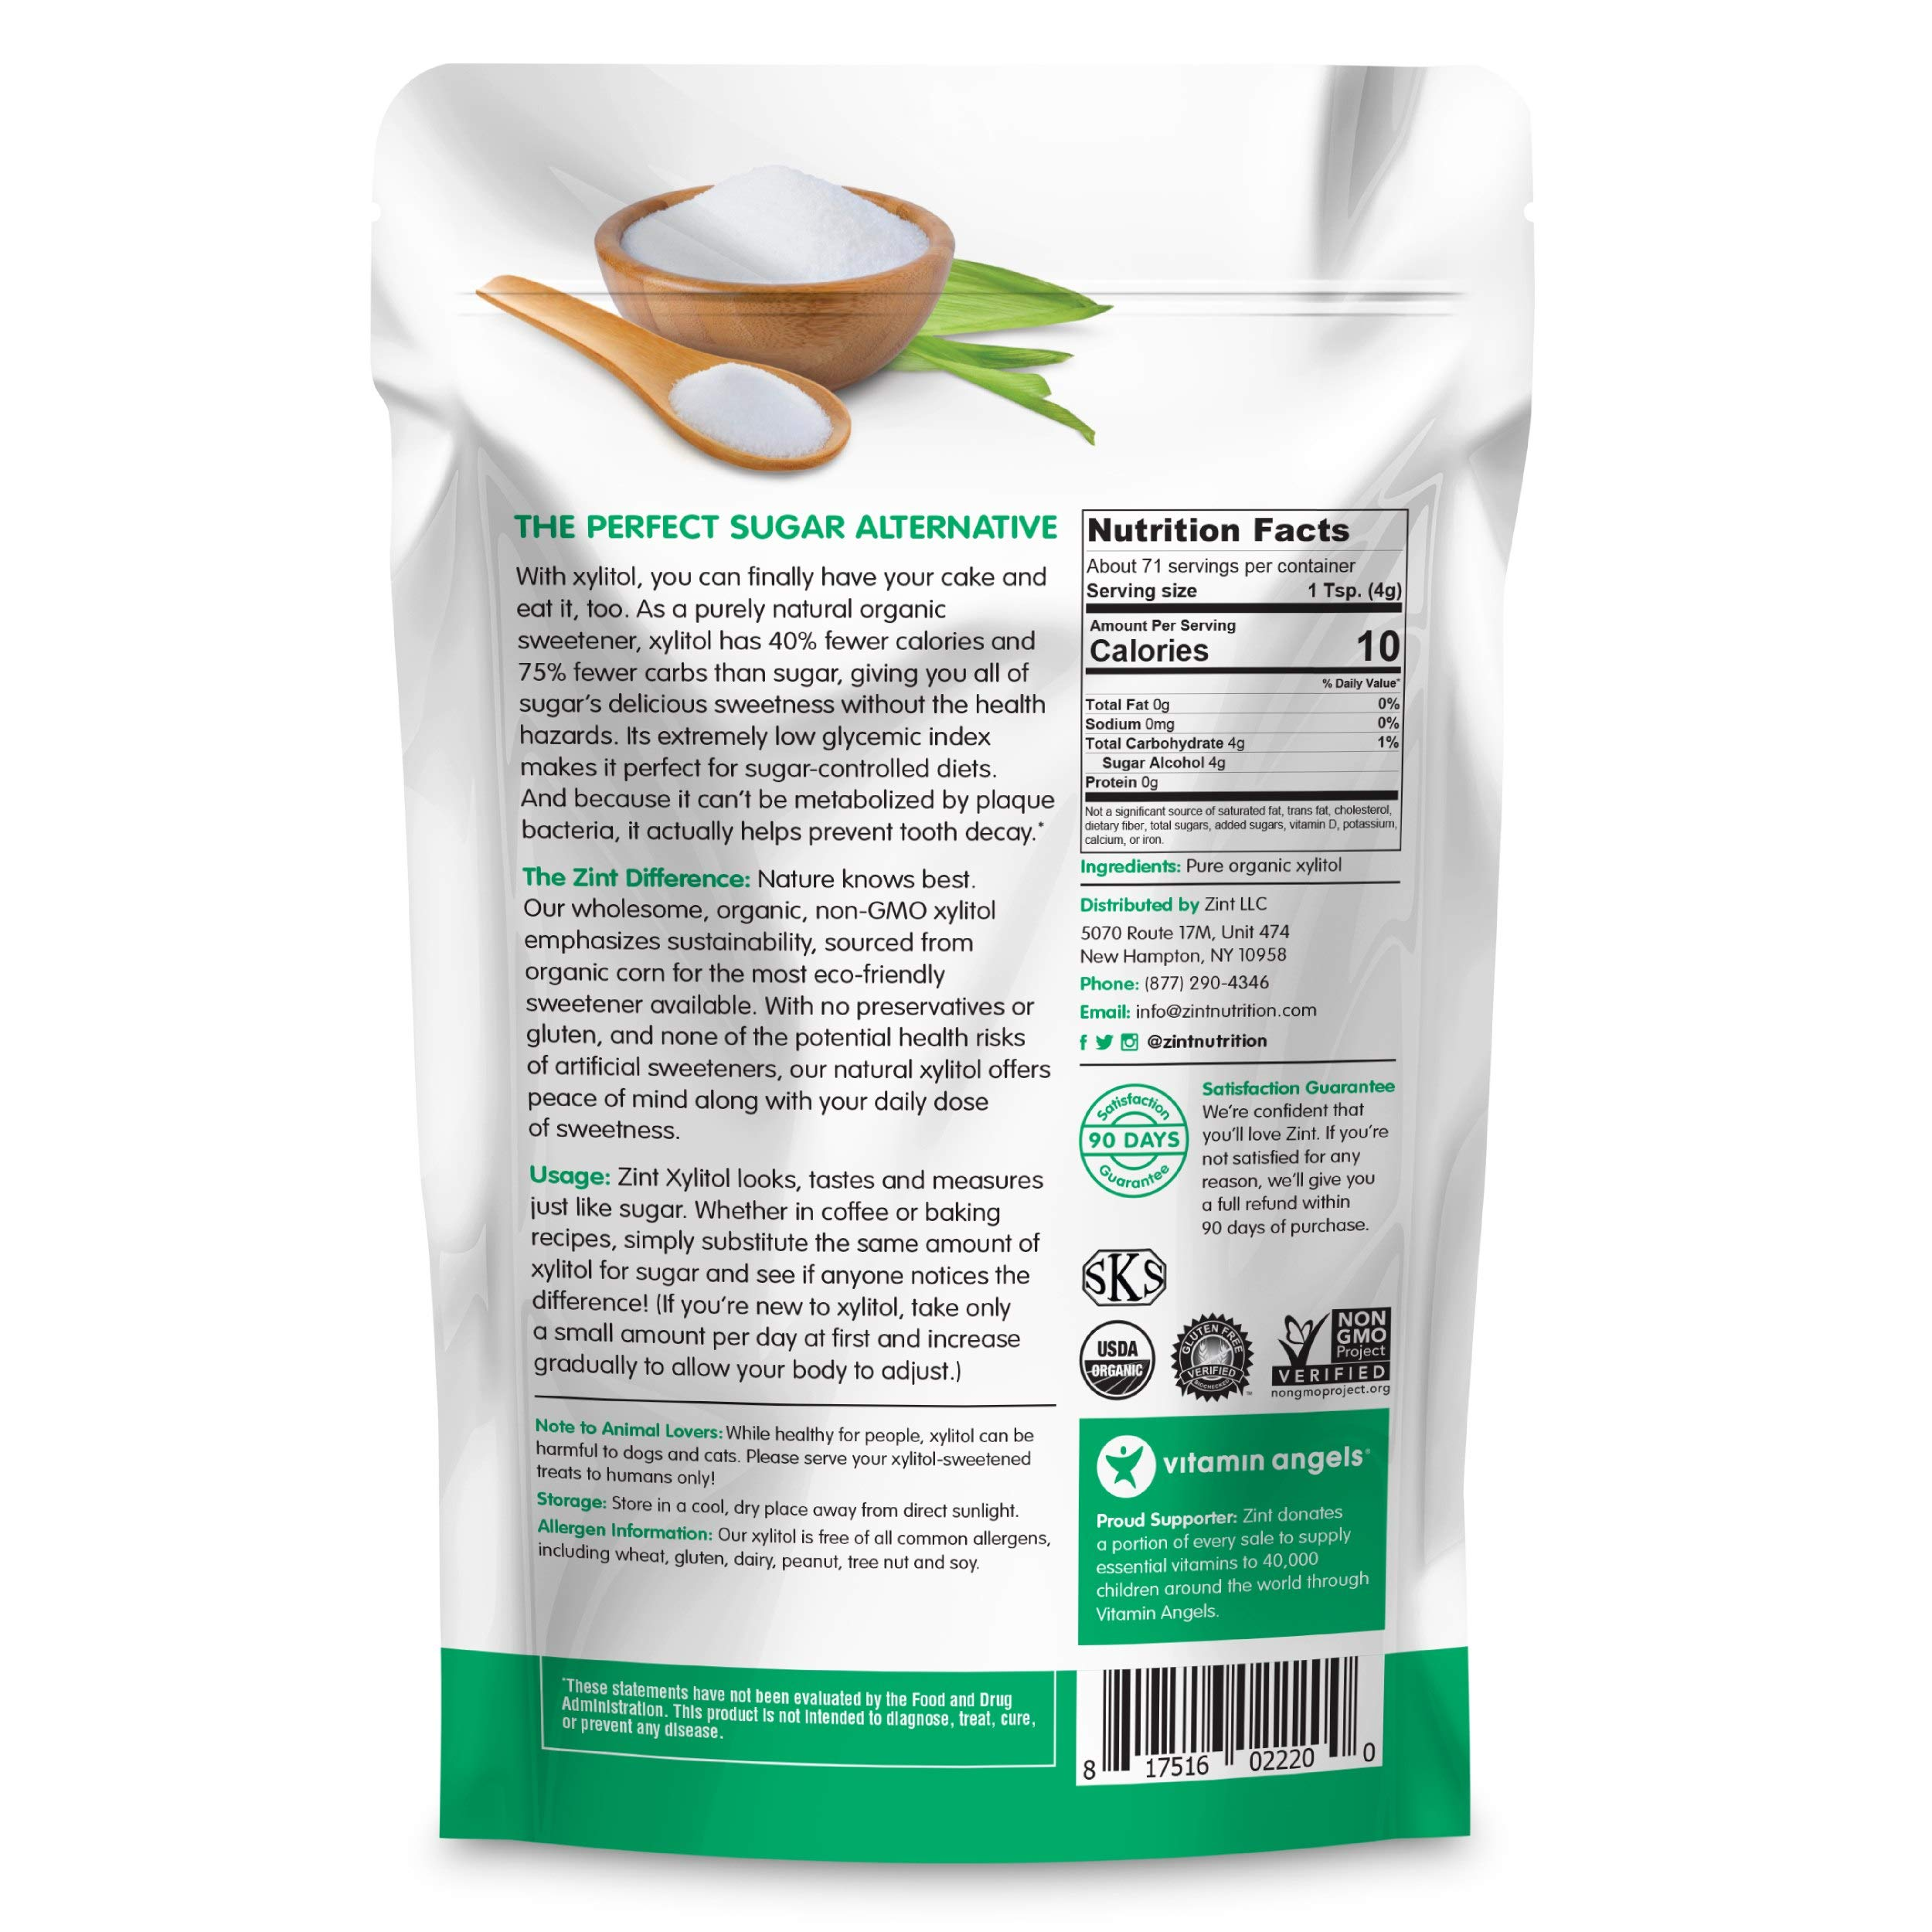 Organic Xylitol Sweetener (10 oz): Keto Friendly, Organic Certified Natural Sugar Substitute, Non GMO, Low Glycemic Index, Measures & Tastes Like Sugar by Zint (Image #8)